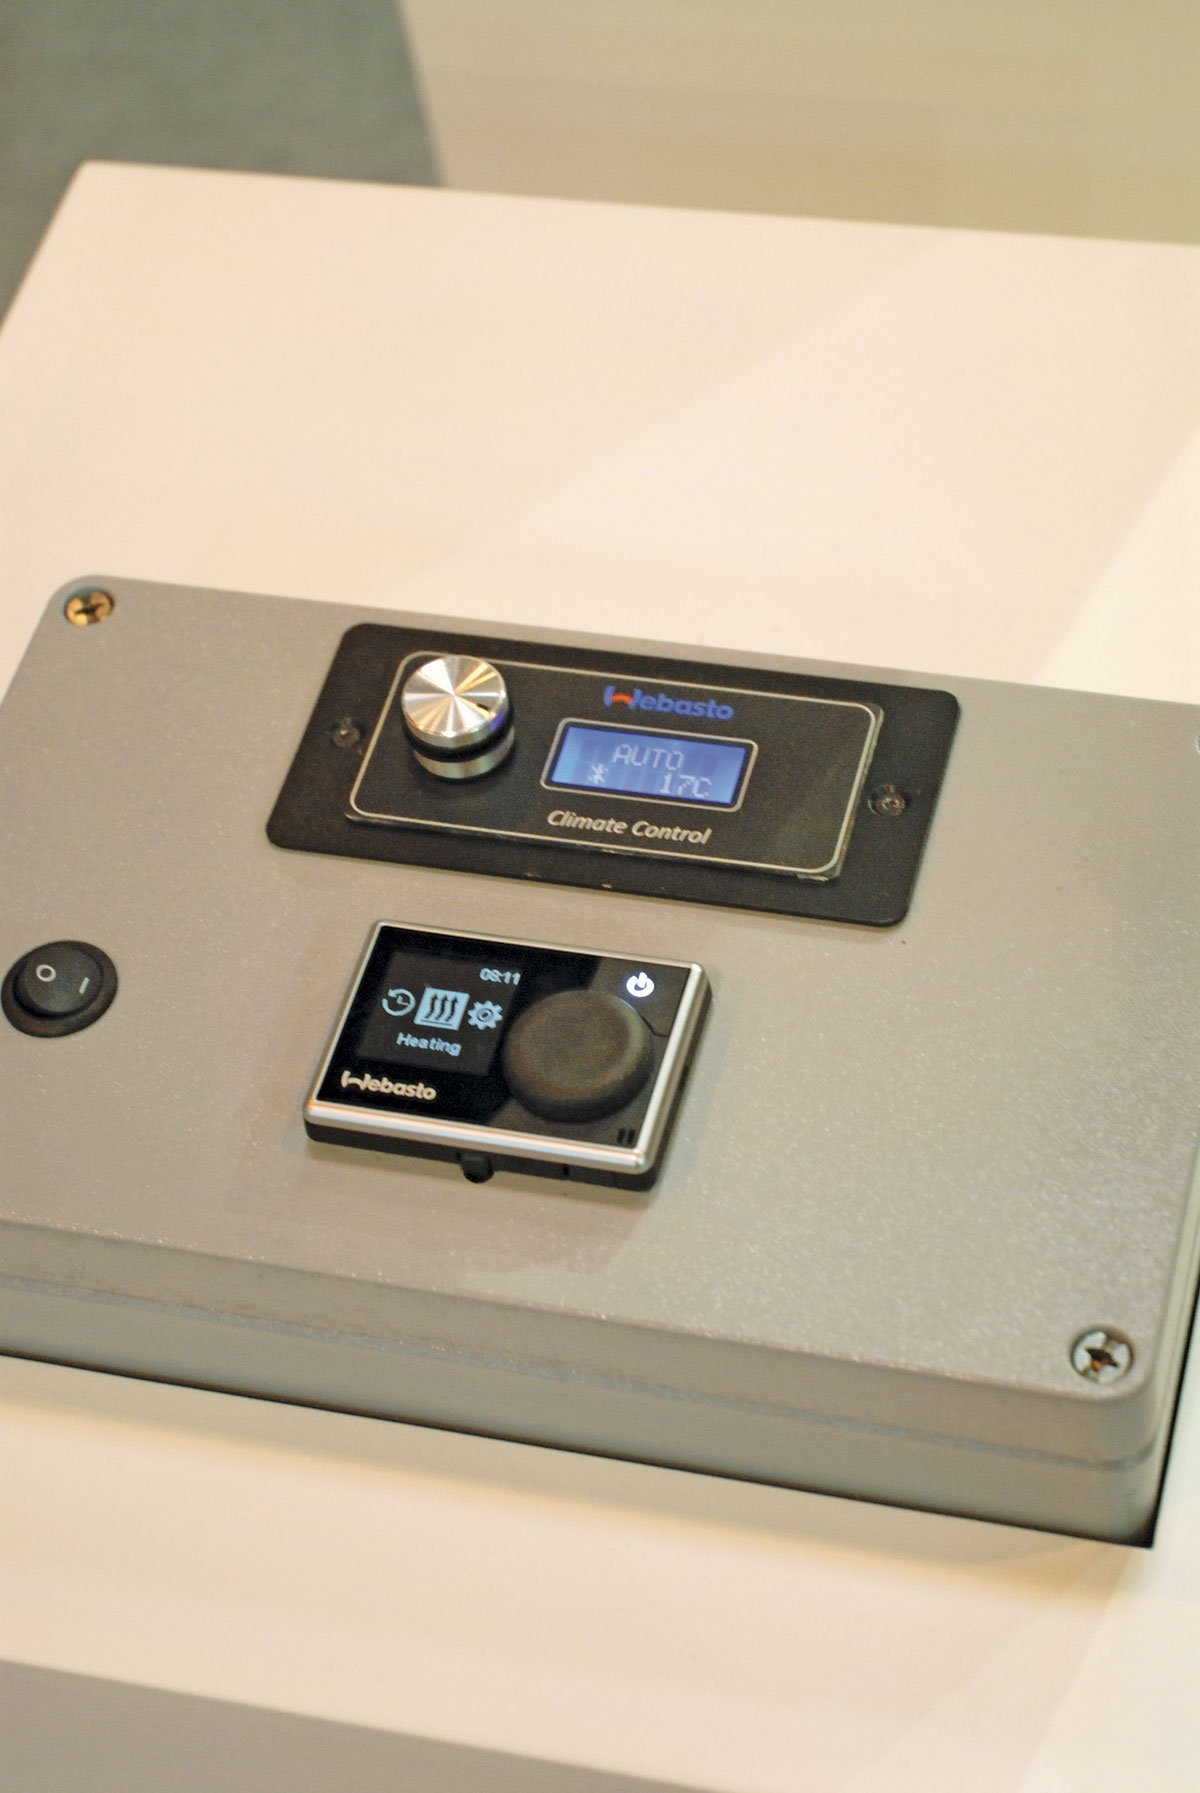 New control panels were displayed by Webasto